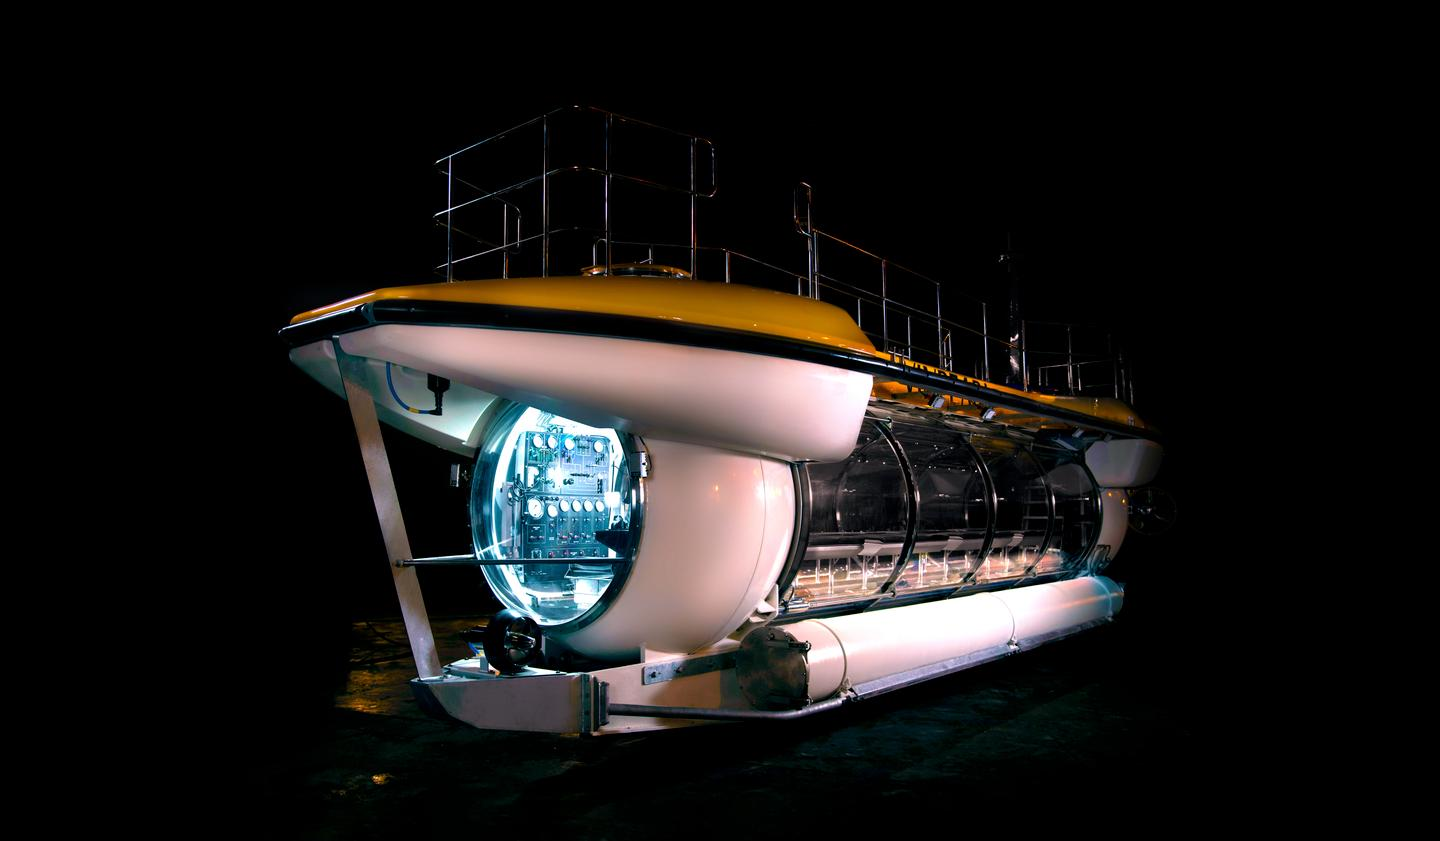 The DeepView 24, a spectacularly panoramic 24-seat tourist submarine, has just launched in Vietnam